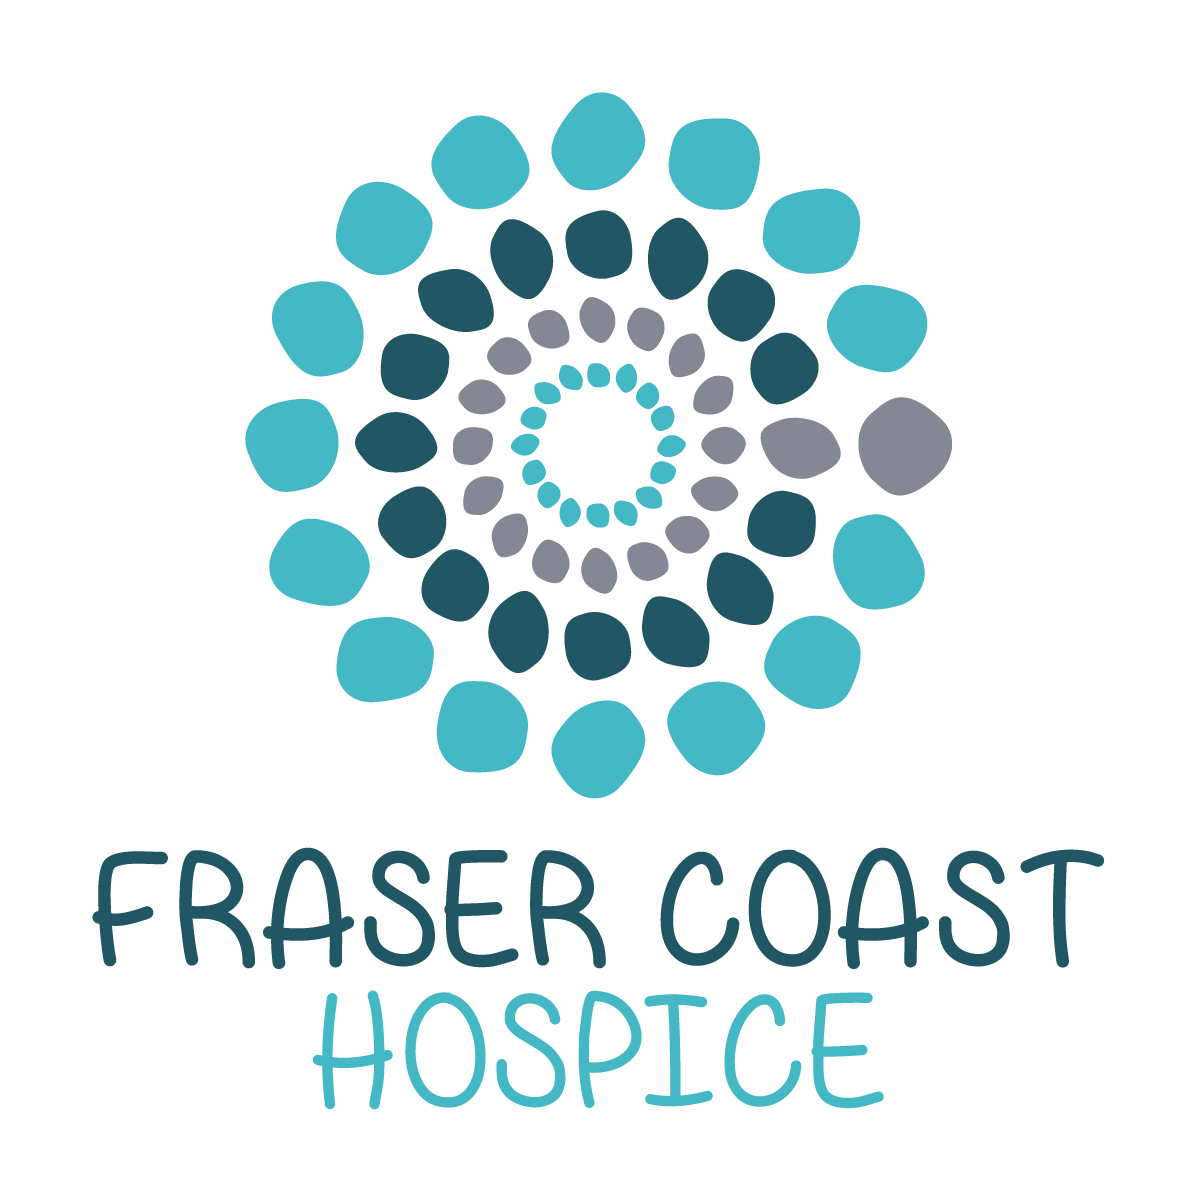 Deign a community friendly and culturally appropriate logo for a hospice